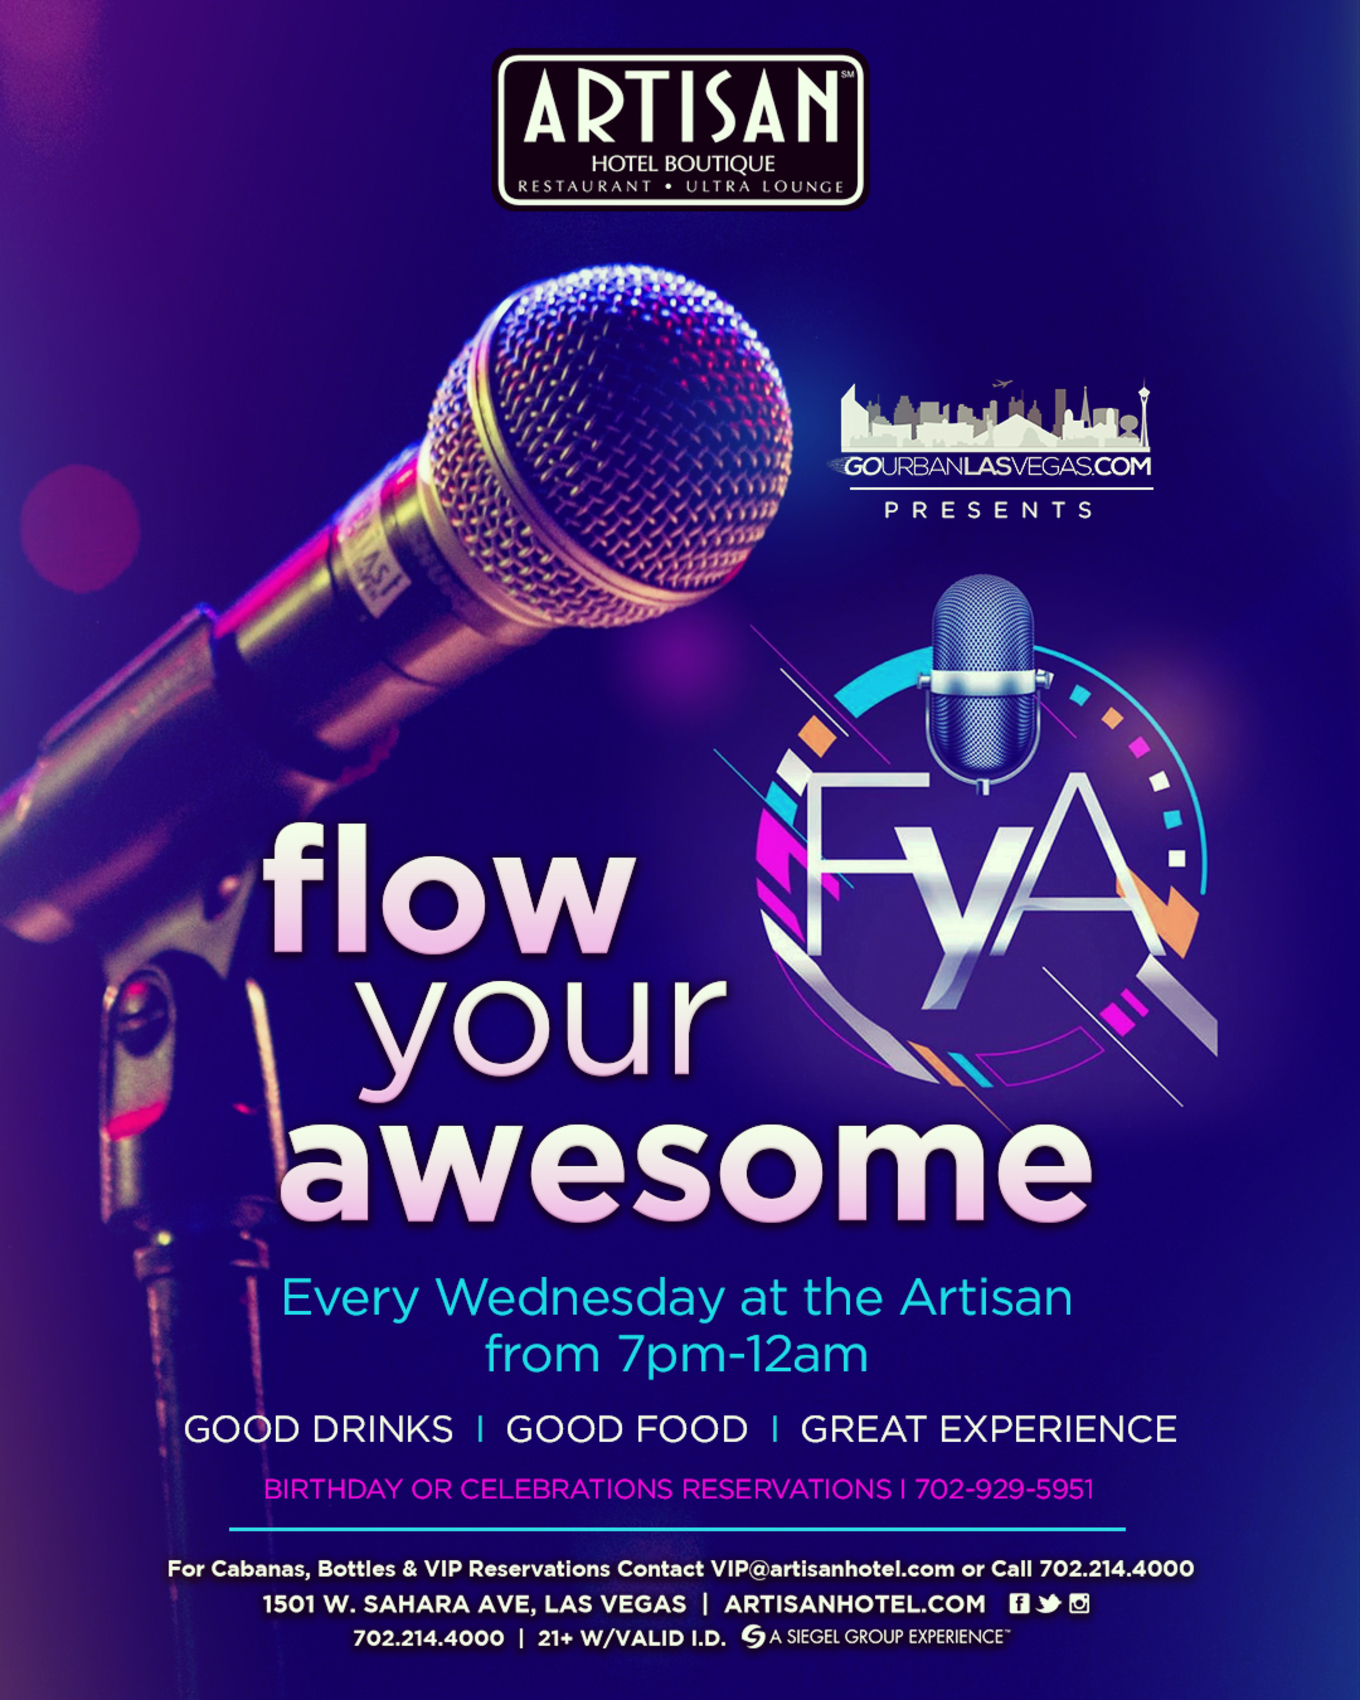 Flow Your Awesome - Tickets - Artisan Hotel Boutique, Las Vegas, NV